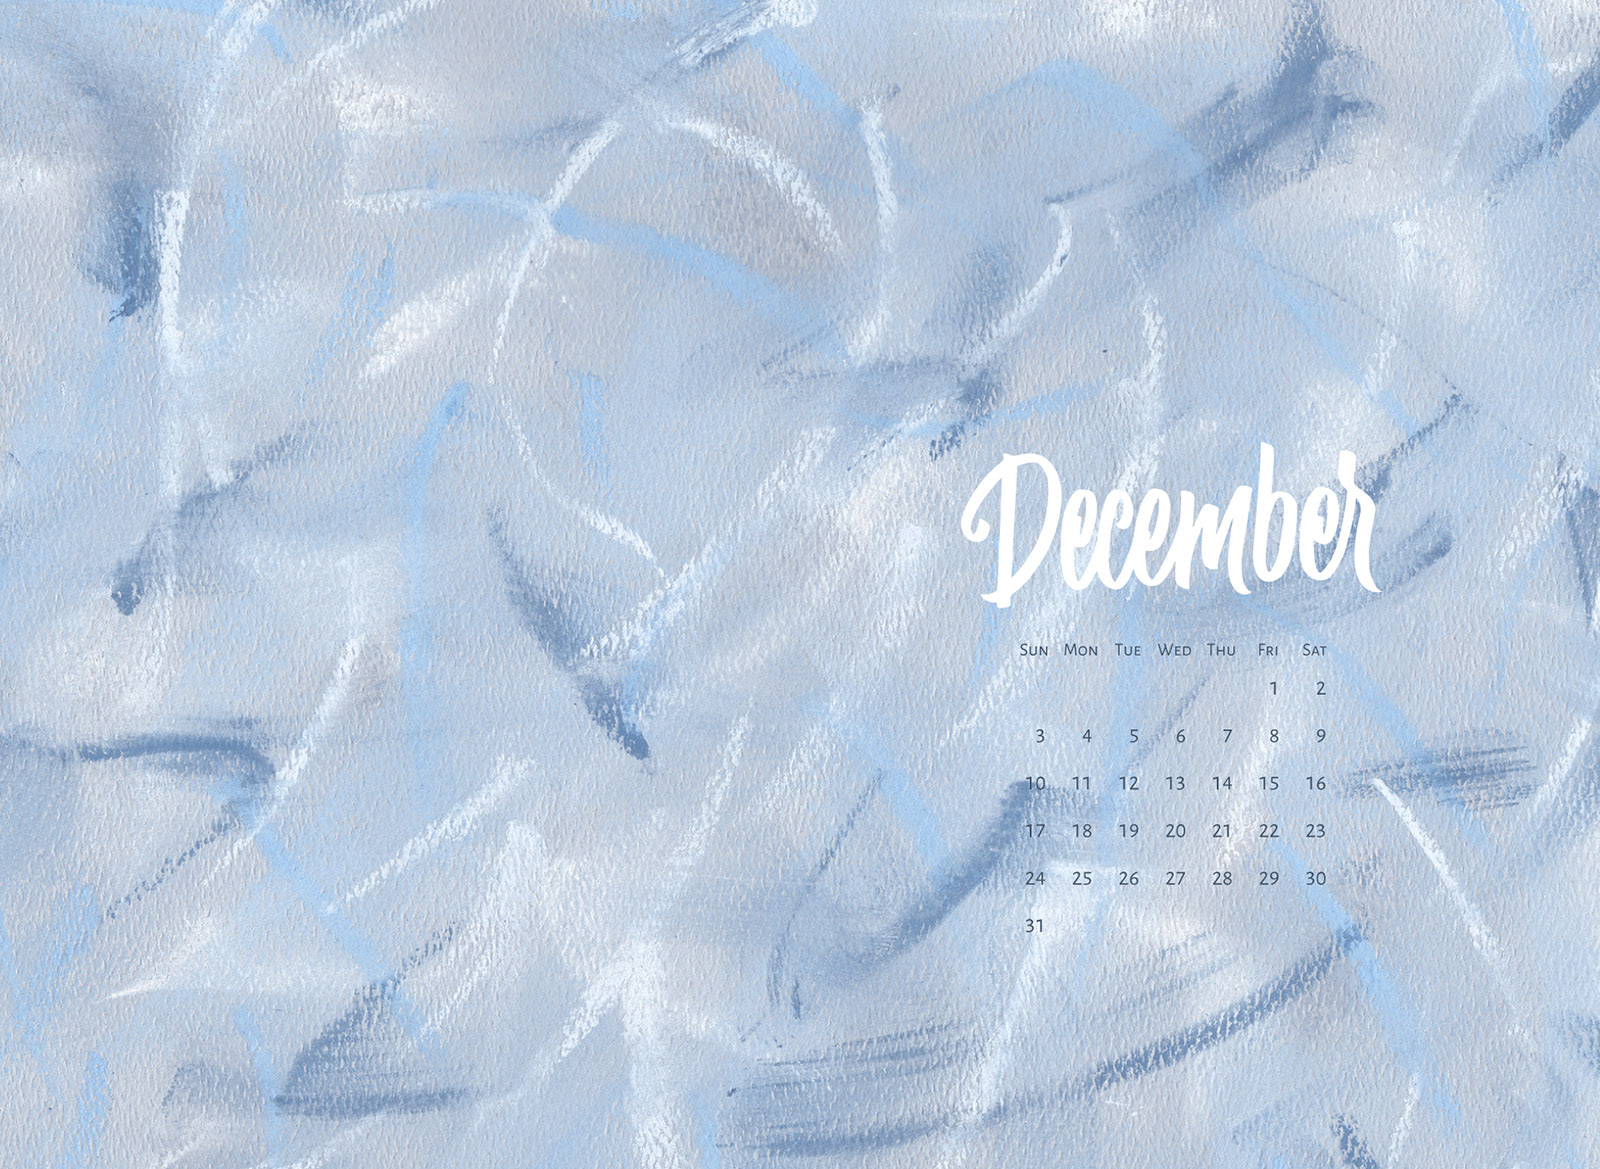 Download a free calendar for December 2017 |©typeandgraphicslab.com | For personal use only